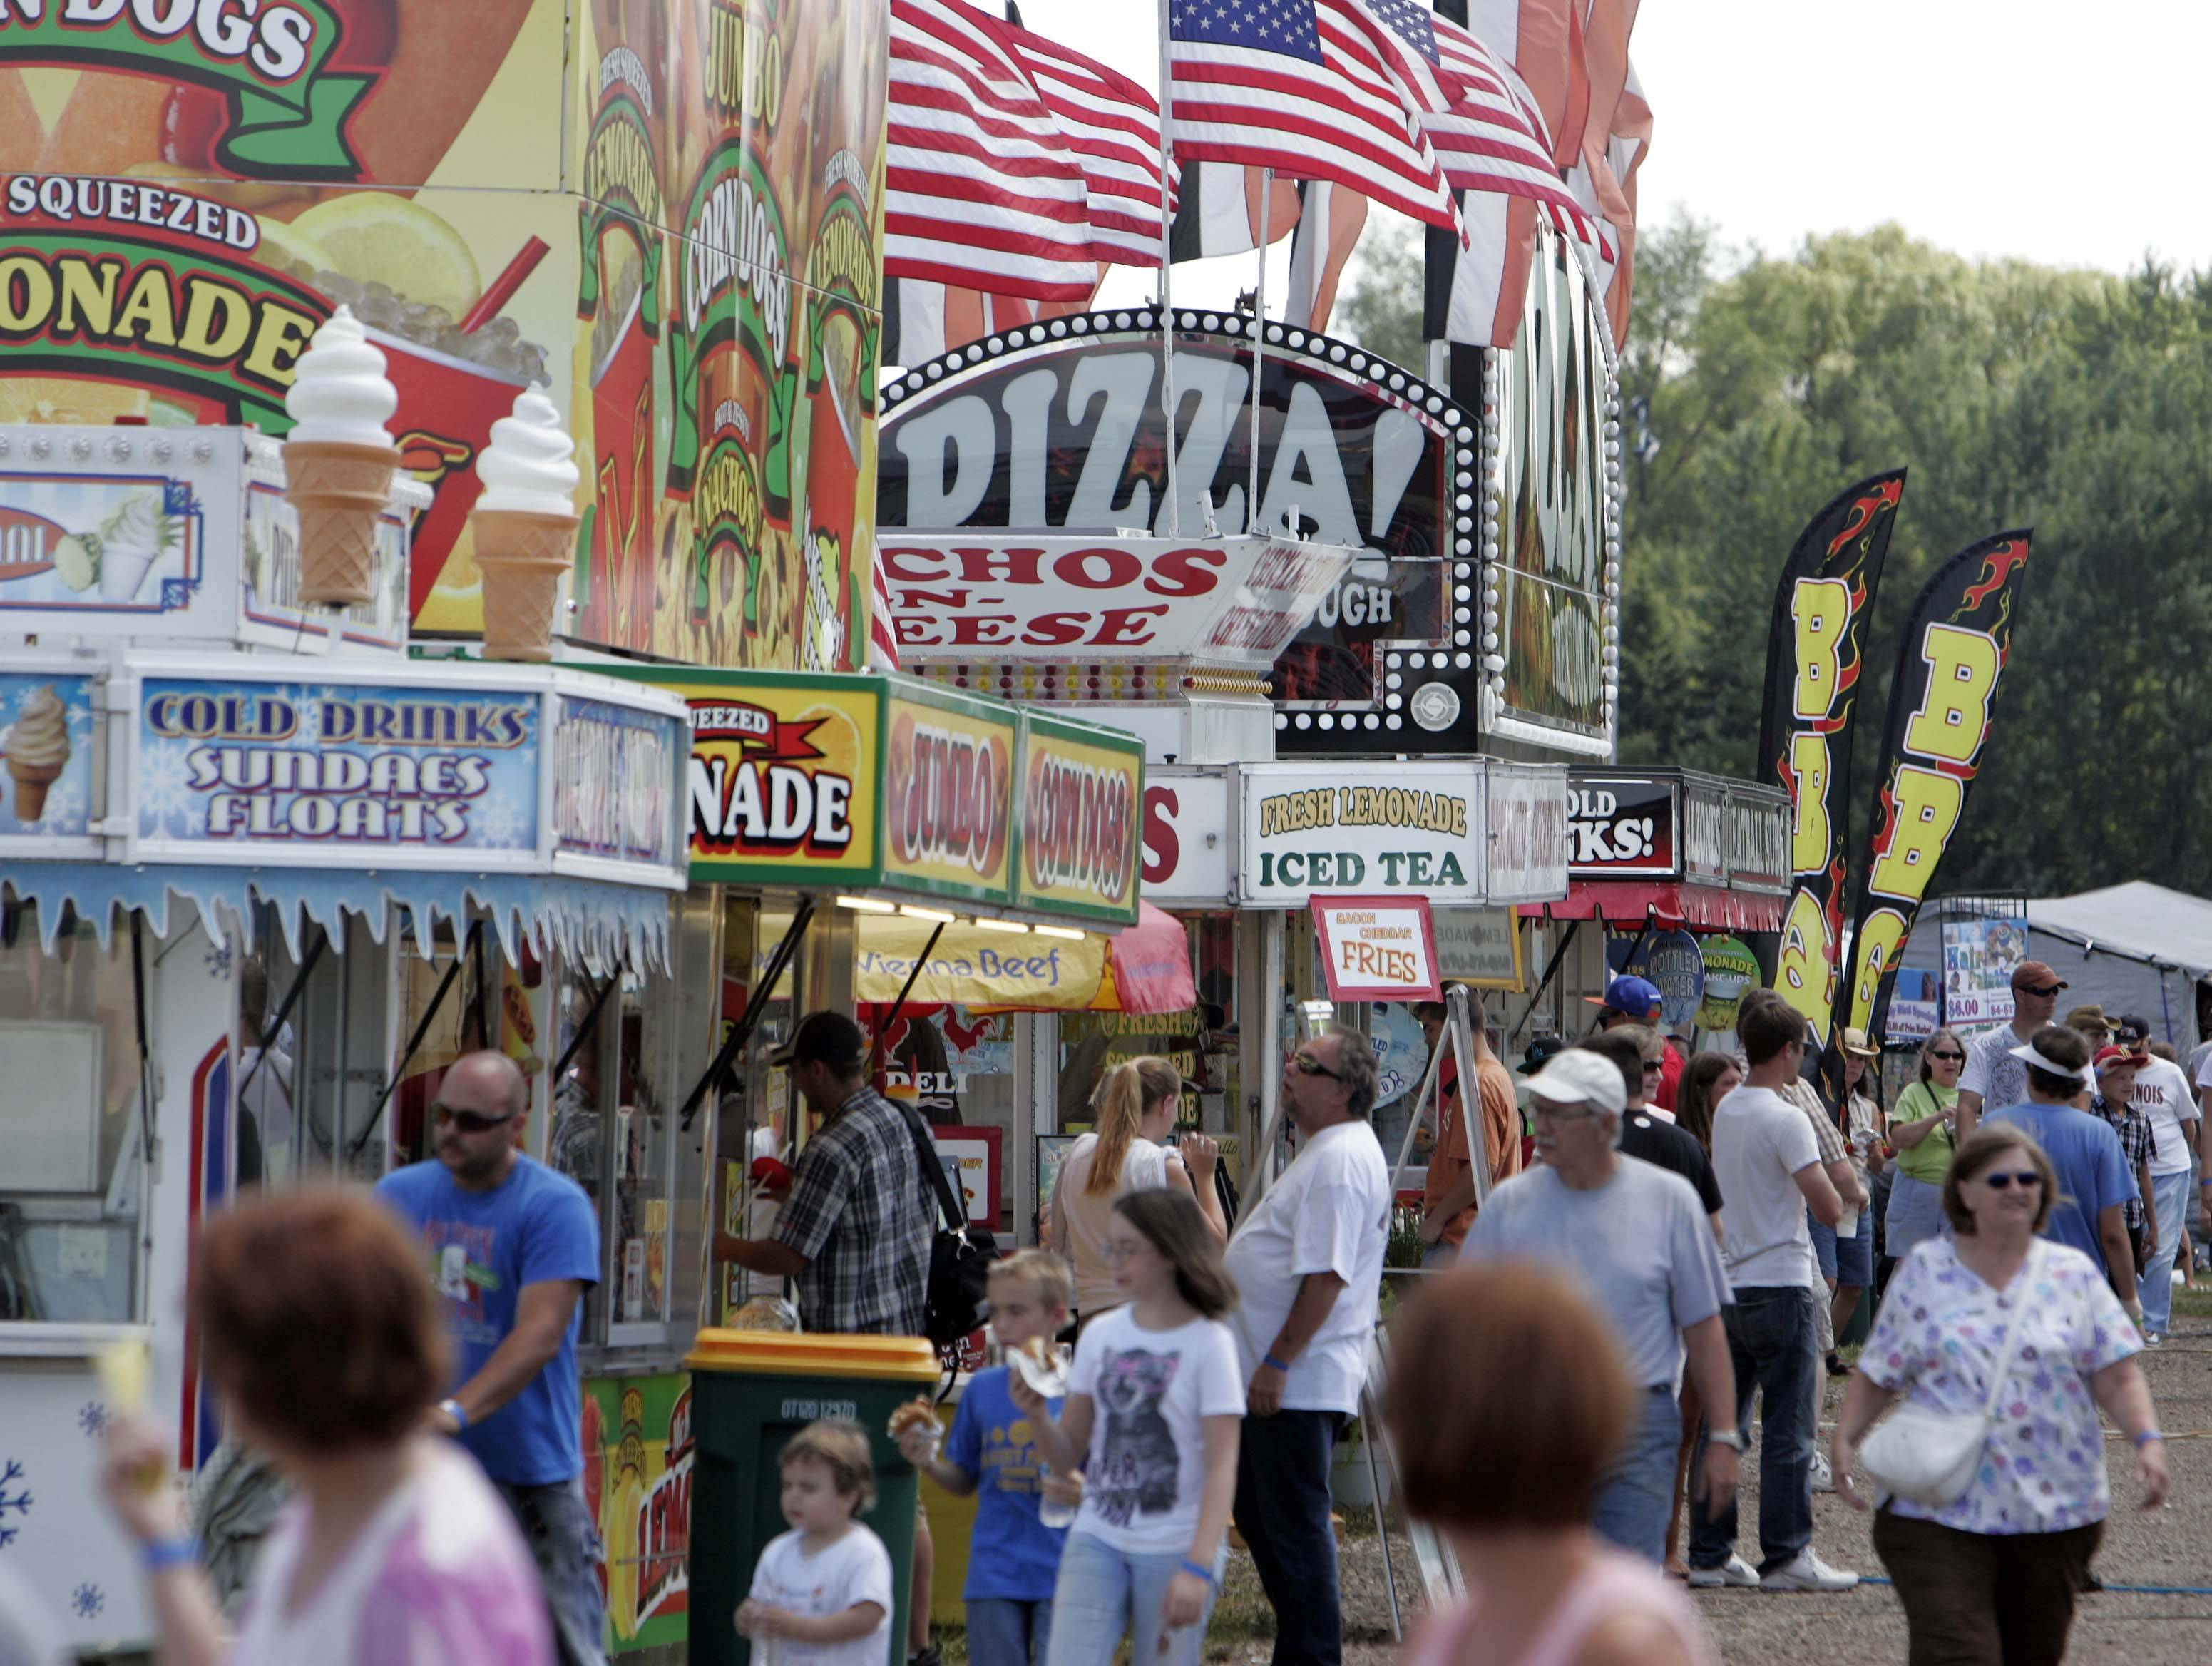 The food booths are busy places at the McHenry County Fair.